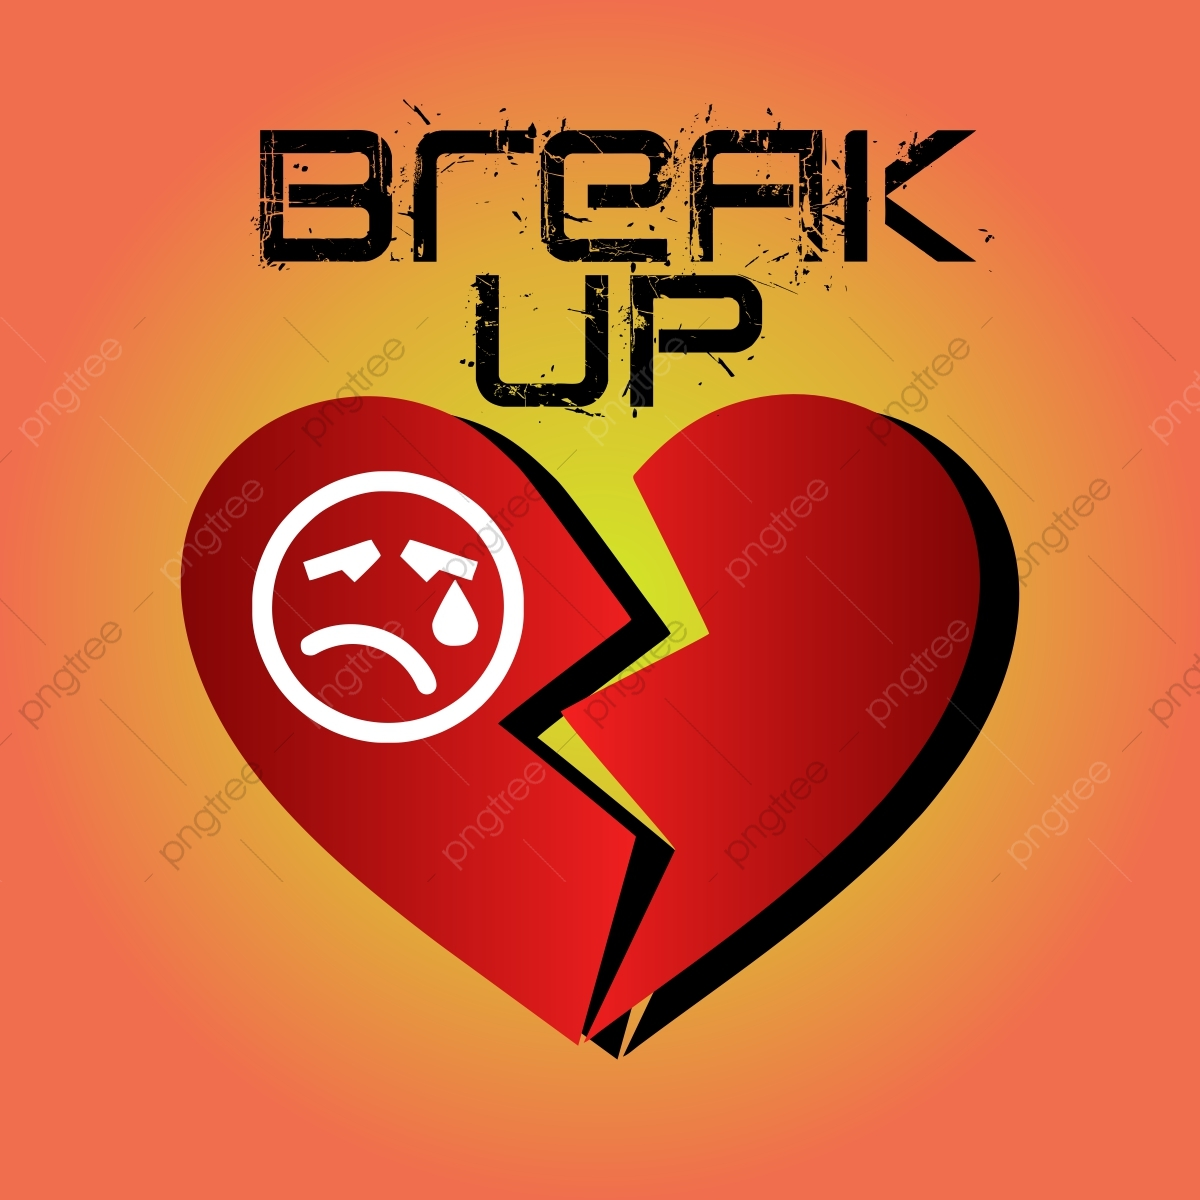 Love Break Up Love Failure Love Png Transparent Image And Clipart For Free Download